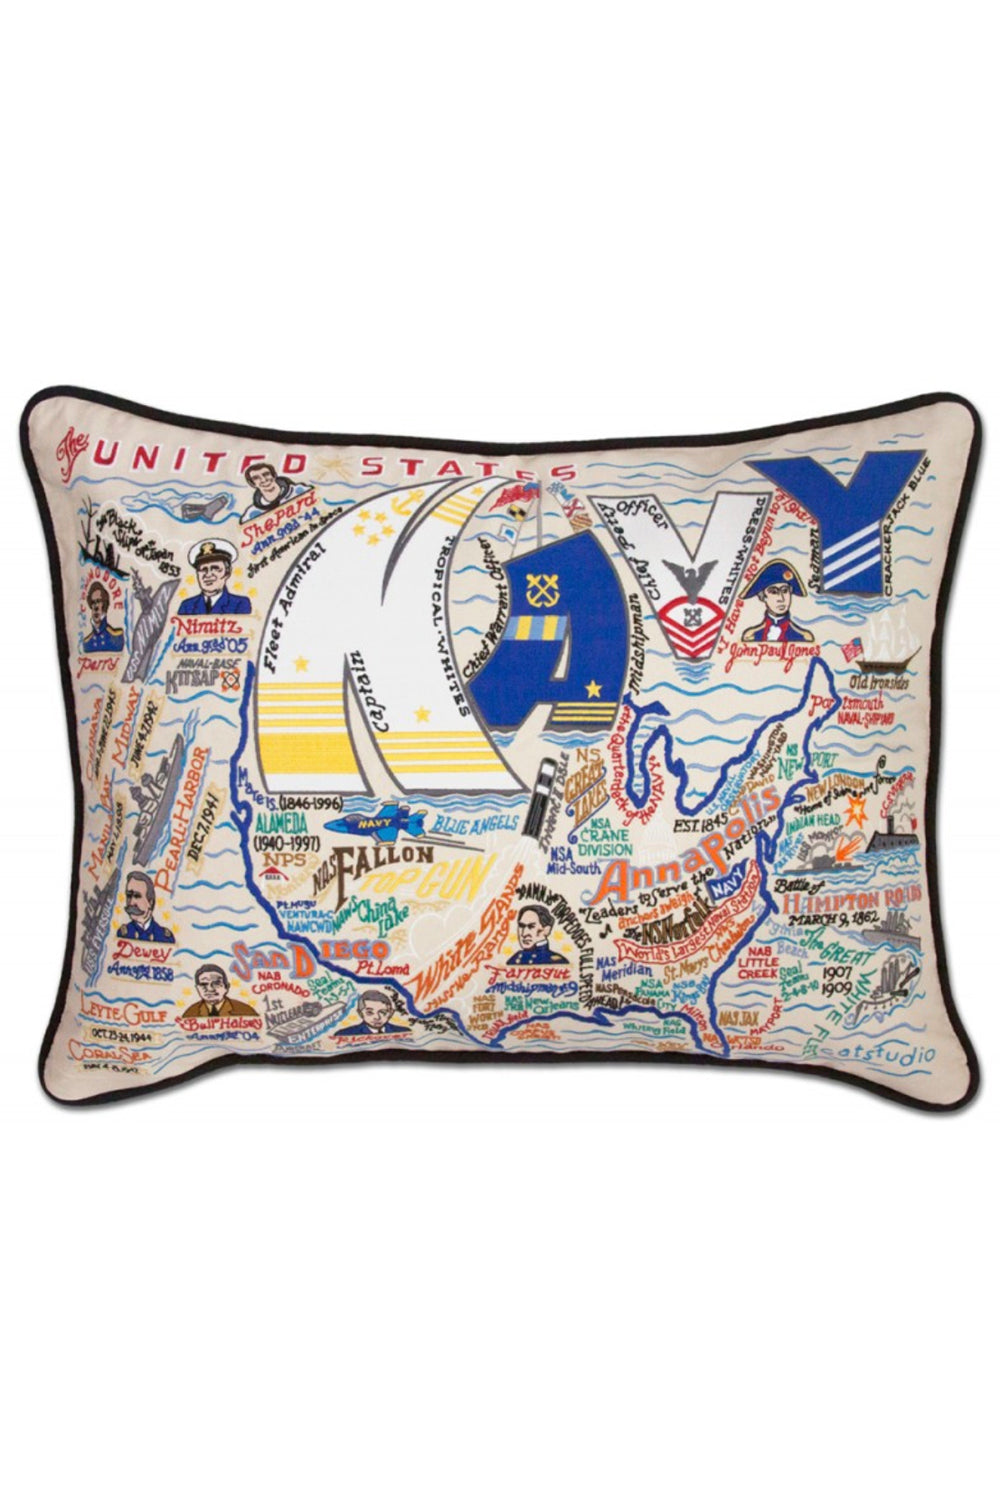 United States Navy Embroidered Pillow